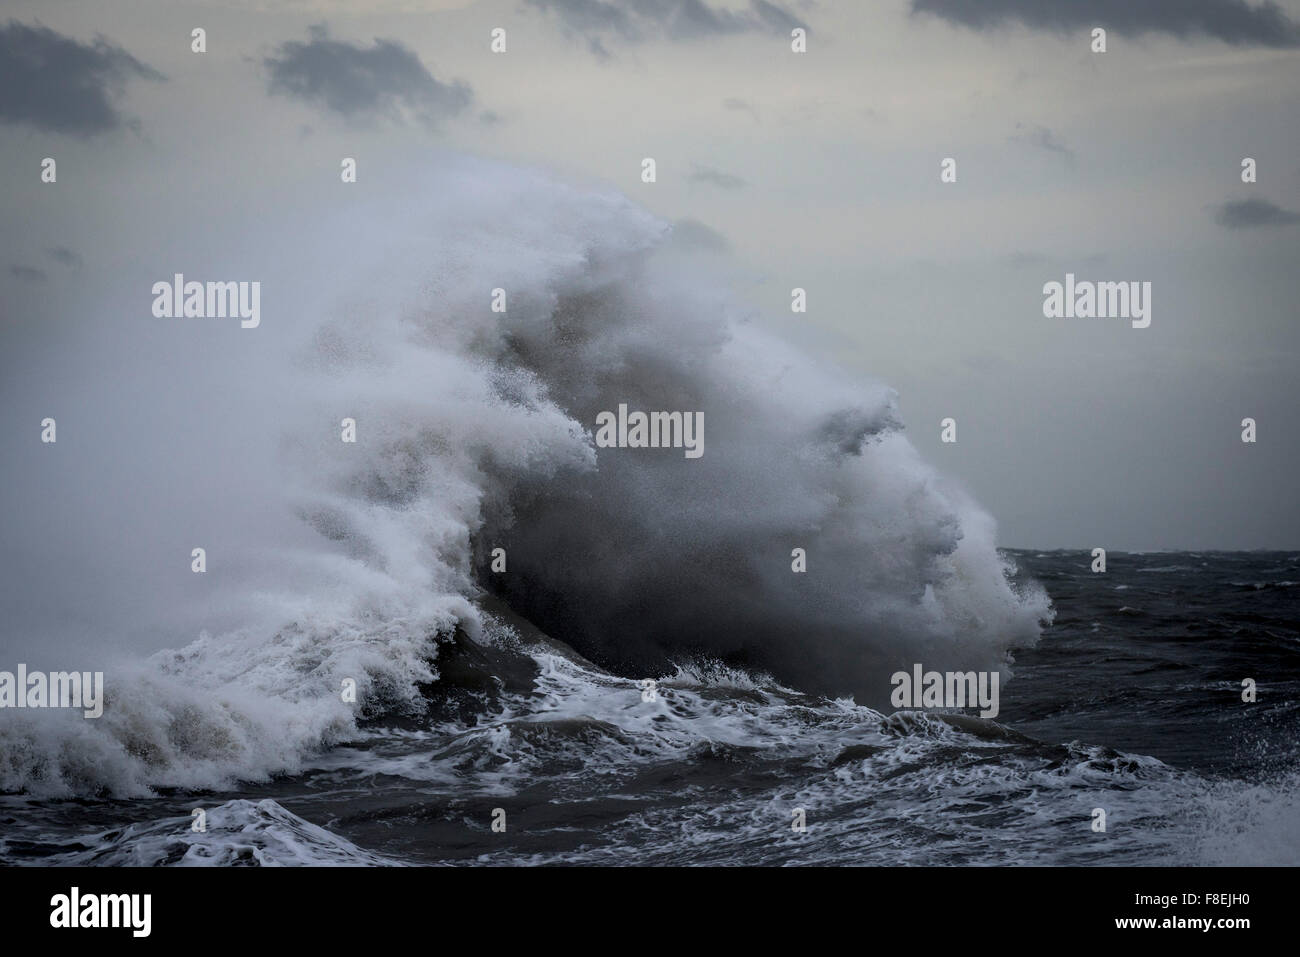 Wild seas as Storm Desmond batters the coast of Porthcawl in South Wales. - Stock Image